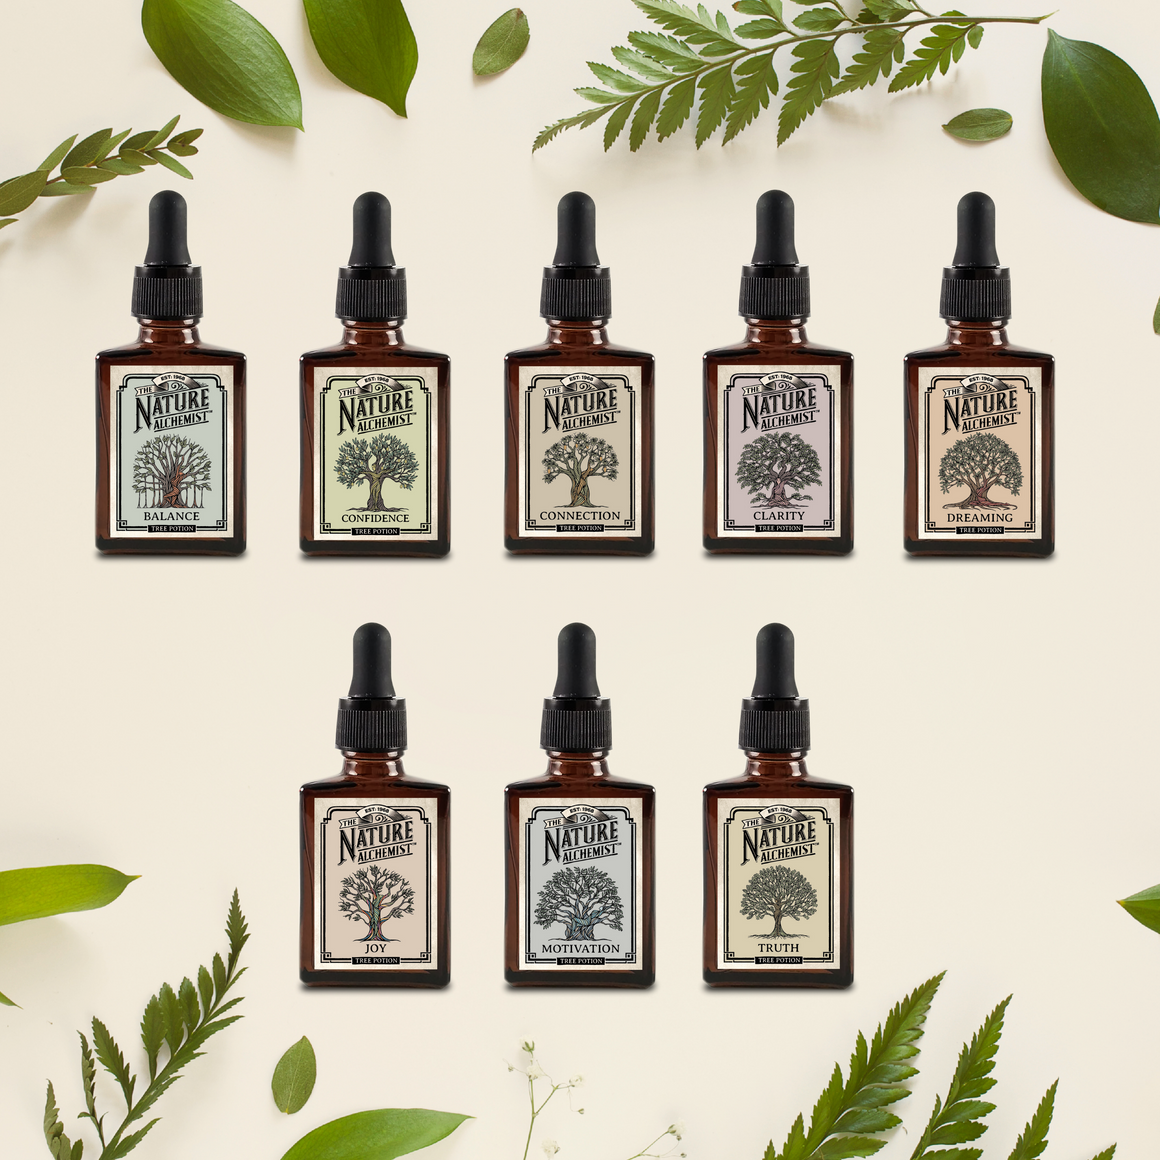 Starter Pack - Tree Gift 30 ml Potions (Wholesale price $599.00 AU)